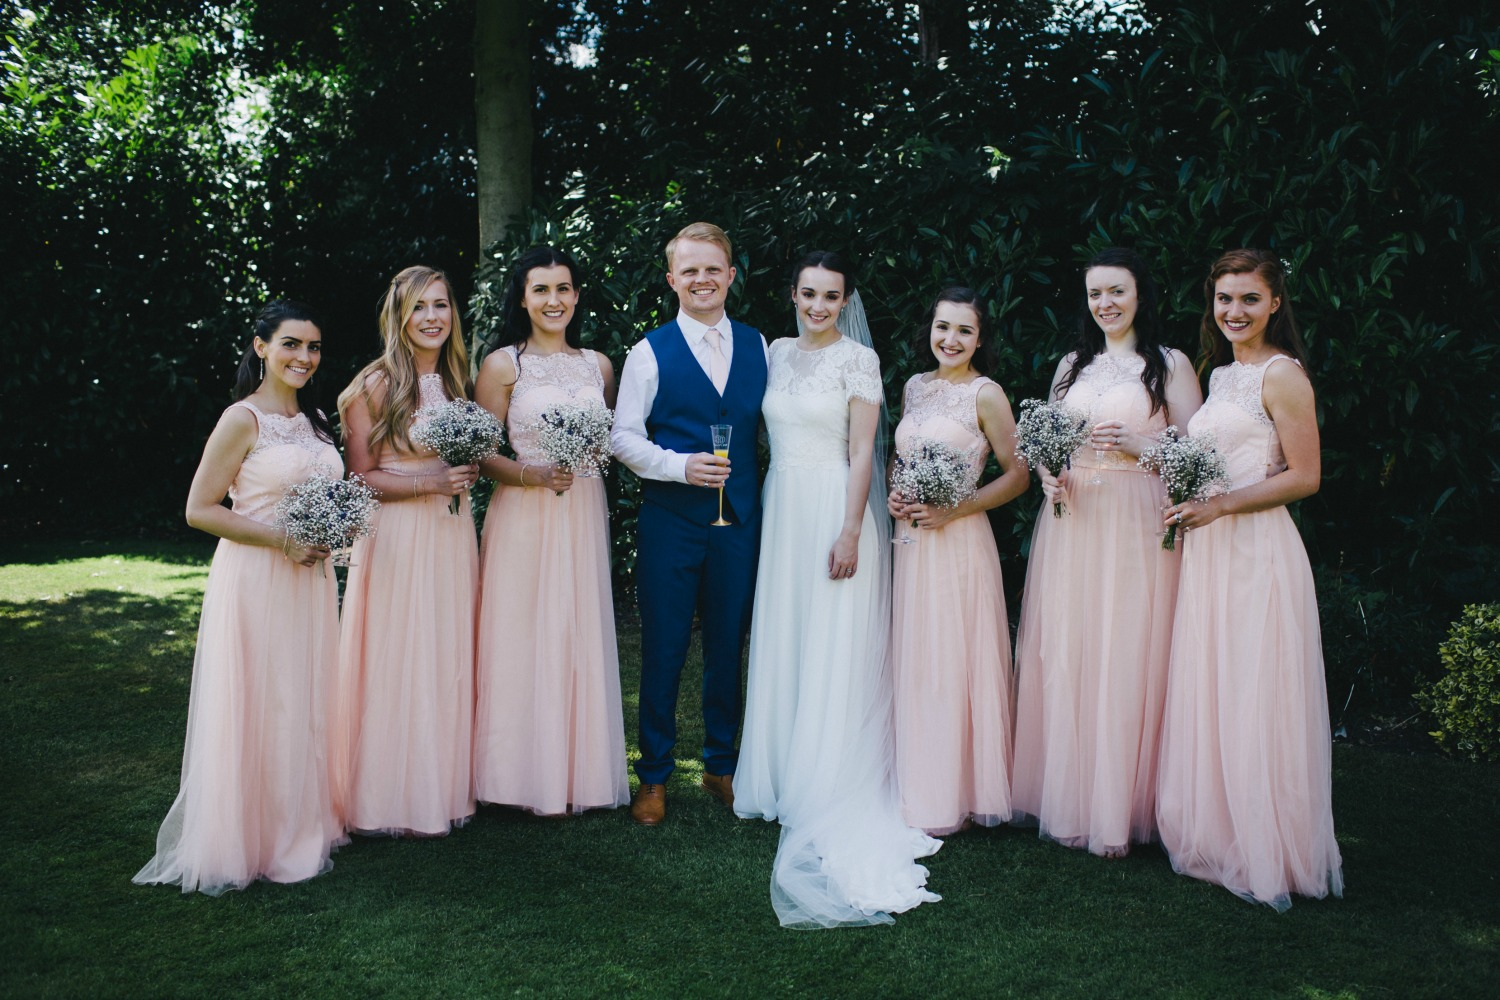 Bride, Groom & Bridesmaids